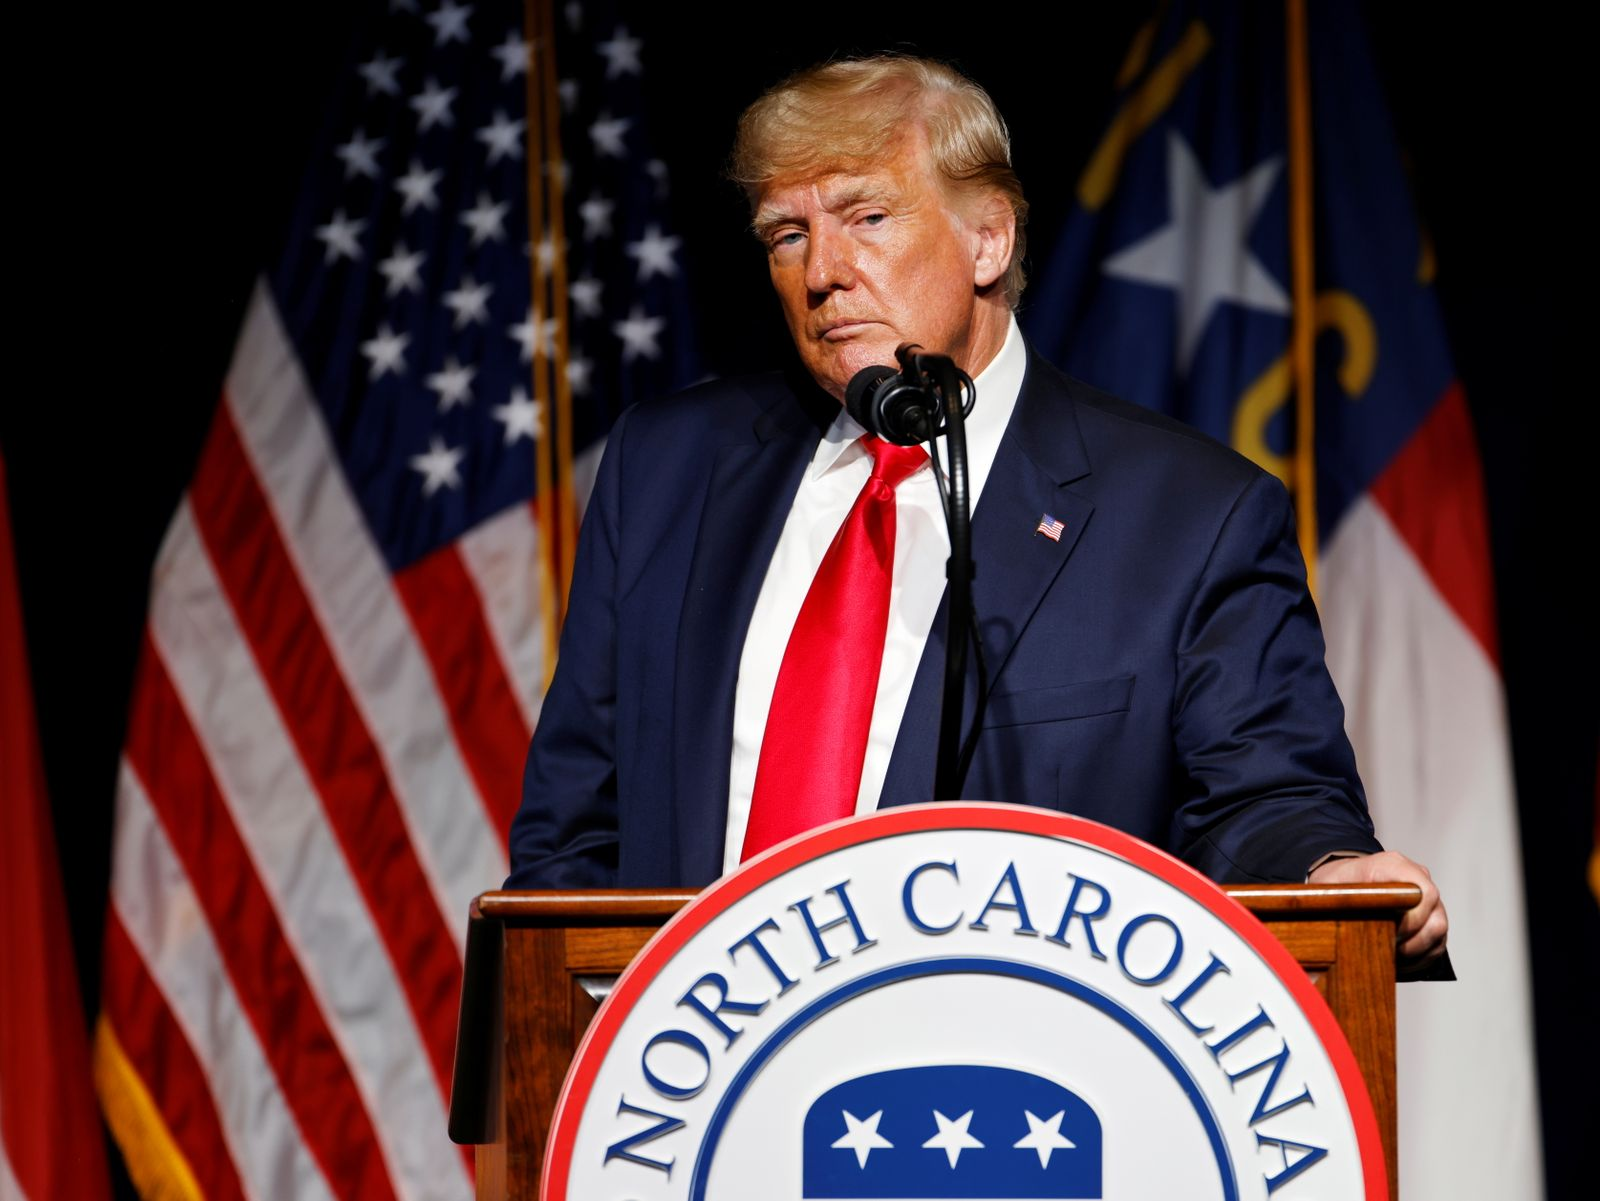 Former U.S. President Donald Trump pauses while speaking at the North Carolina GOP convention dinner in Greenville